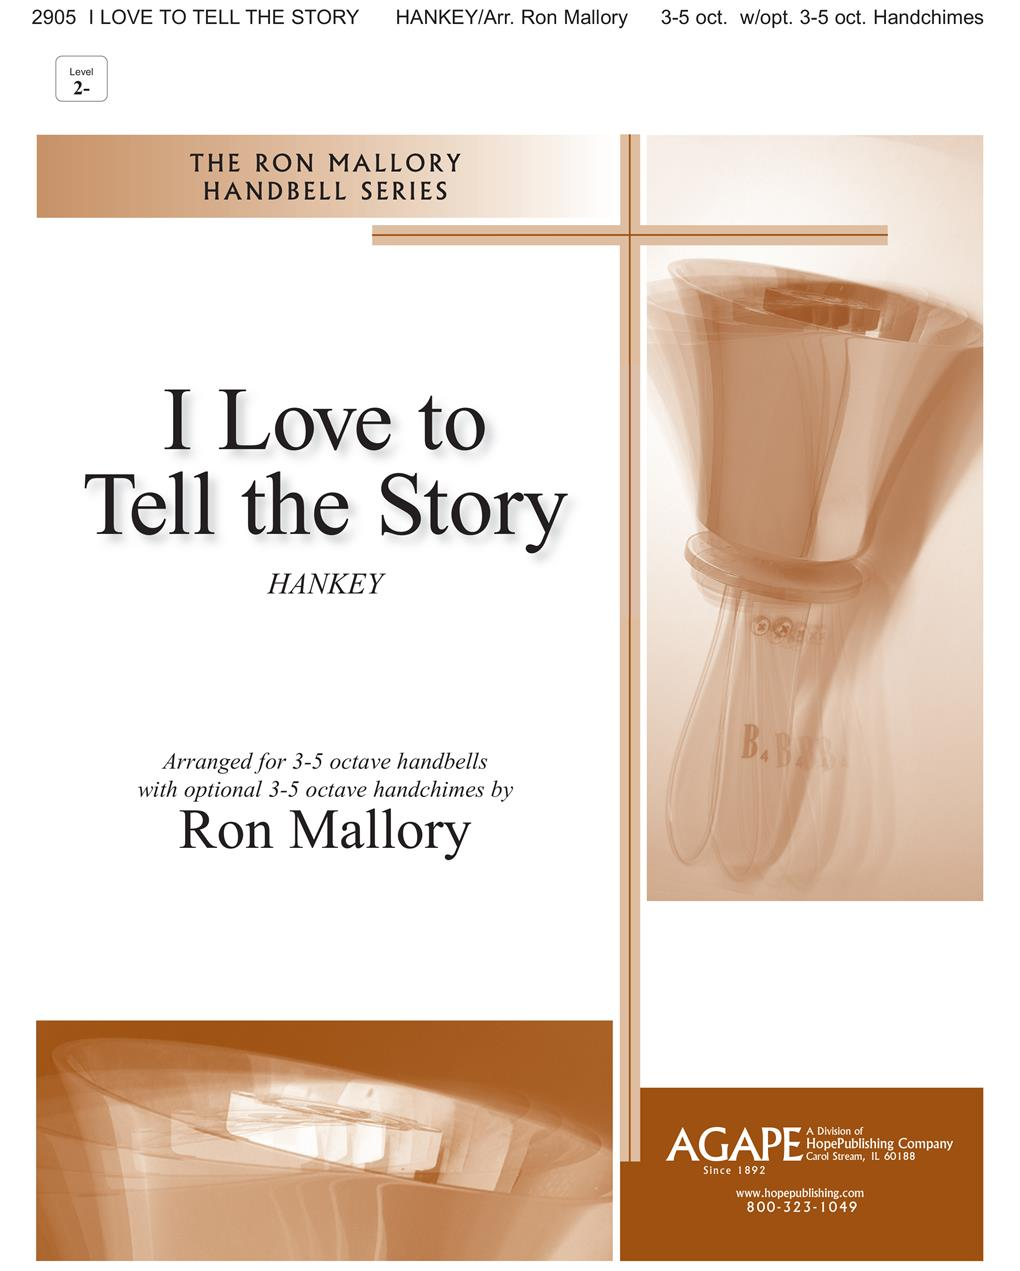 I Love To Tell the Story - 3-5 Oct. Cover Image